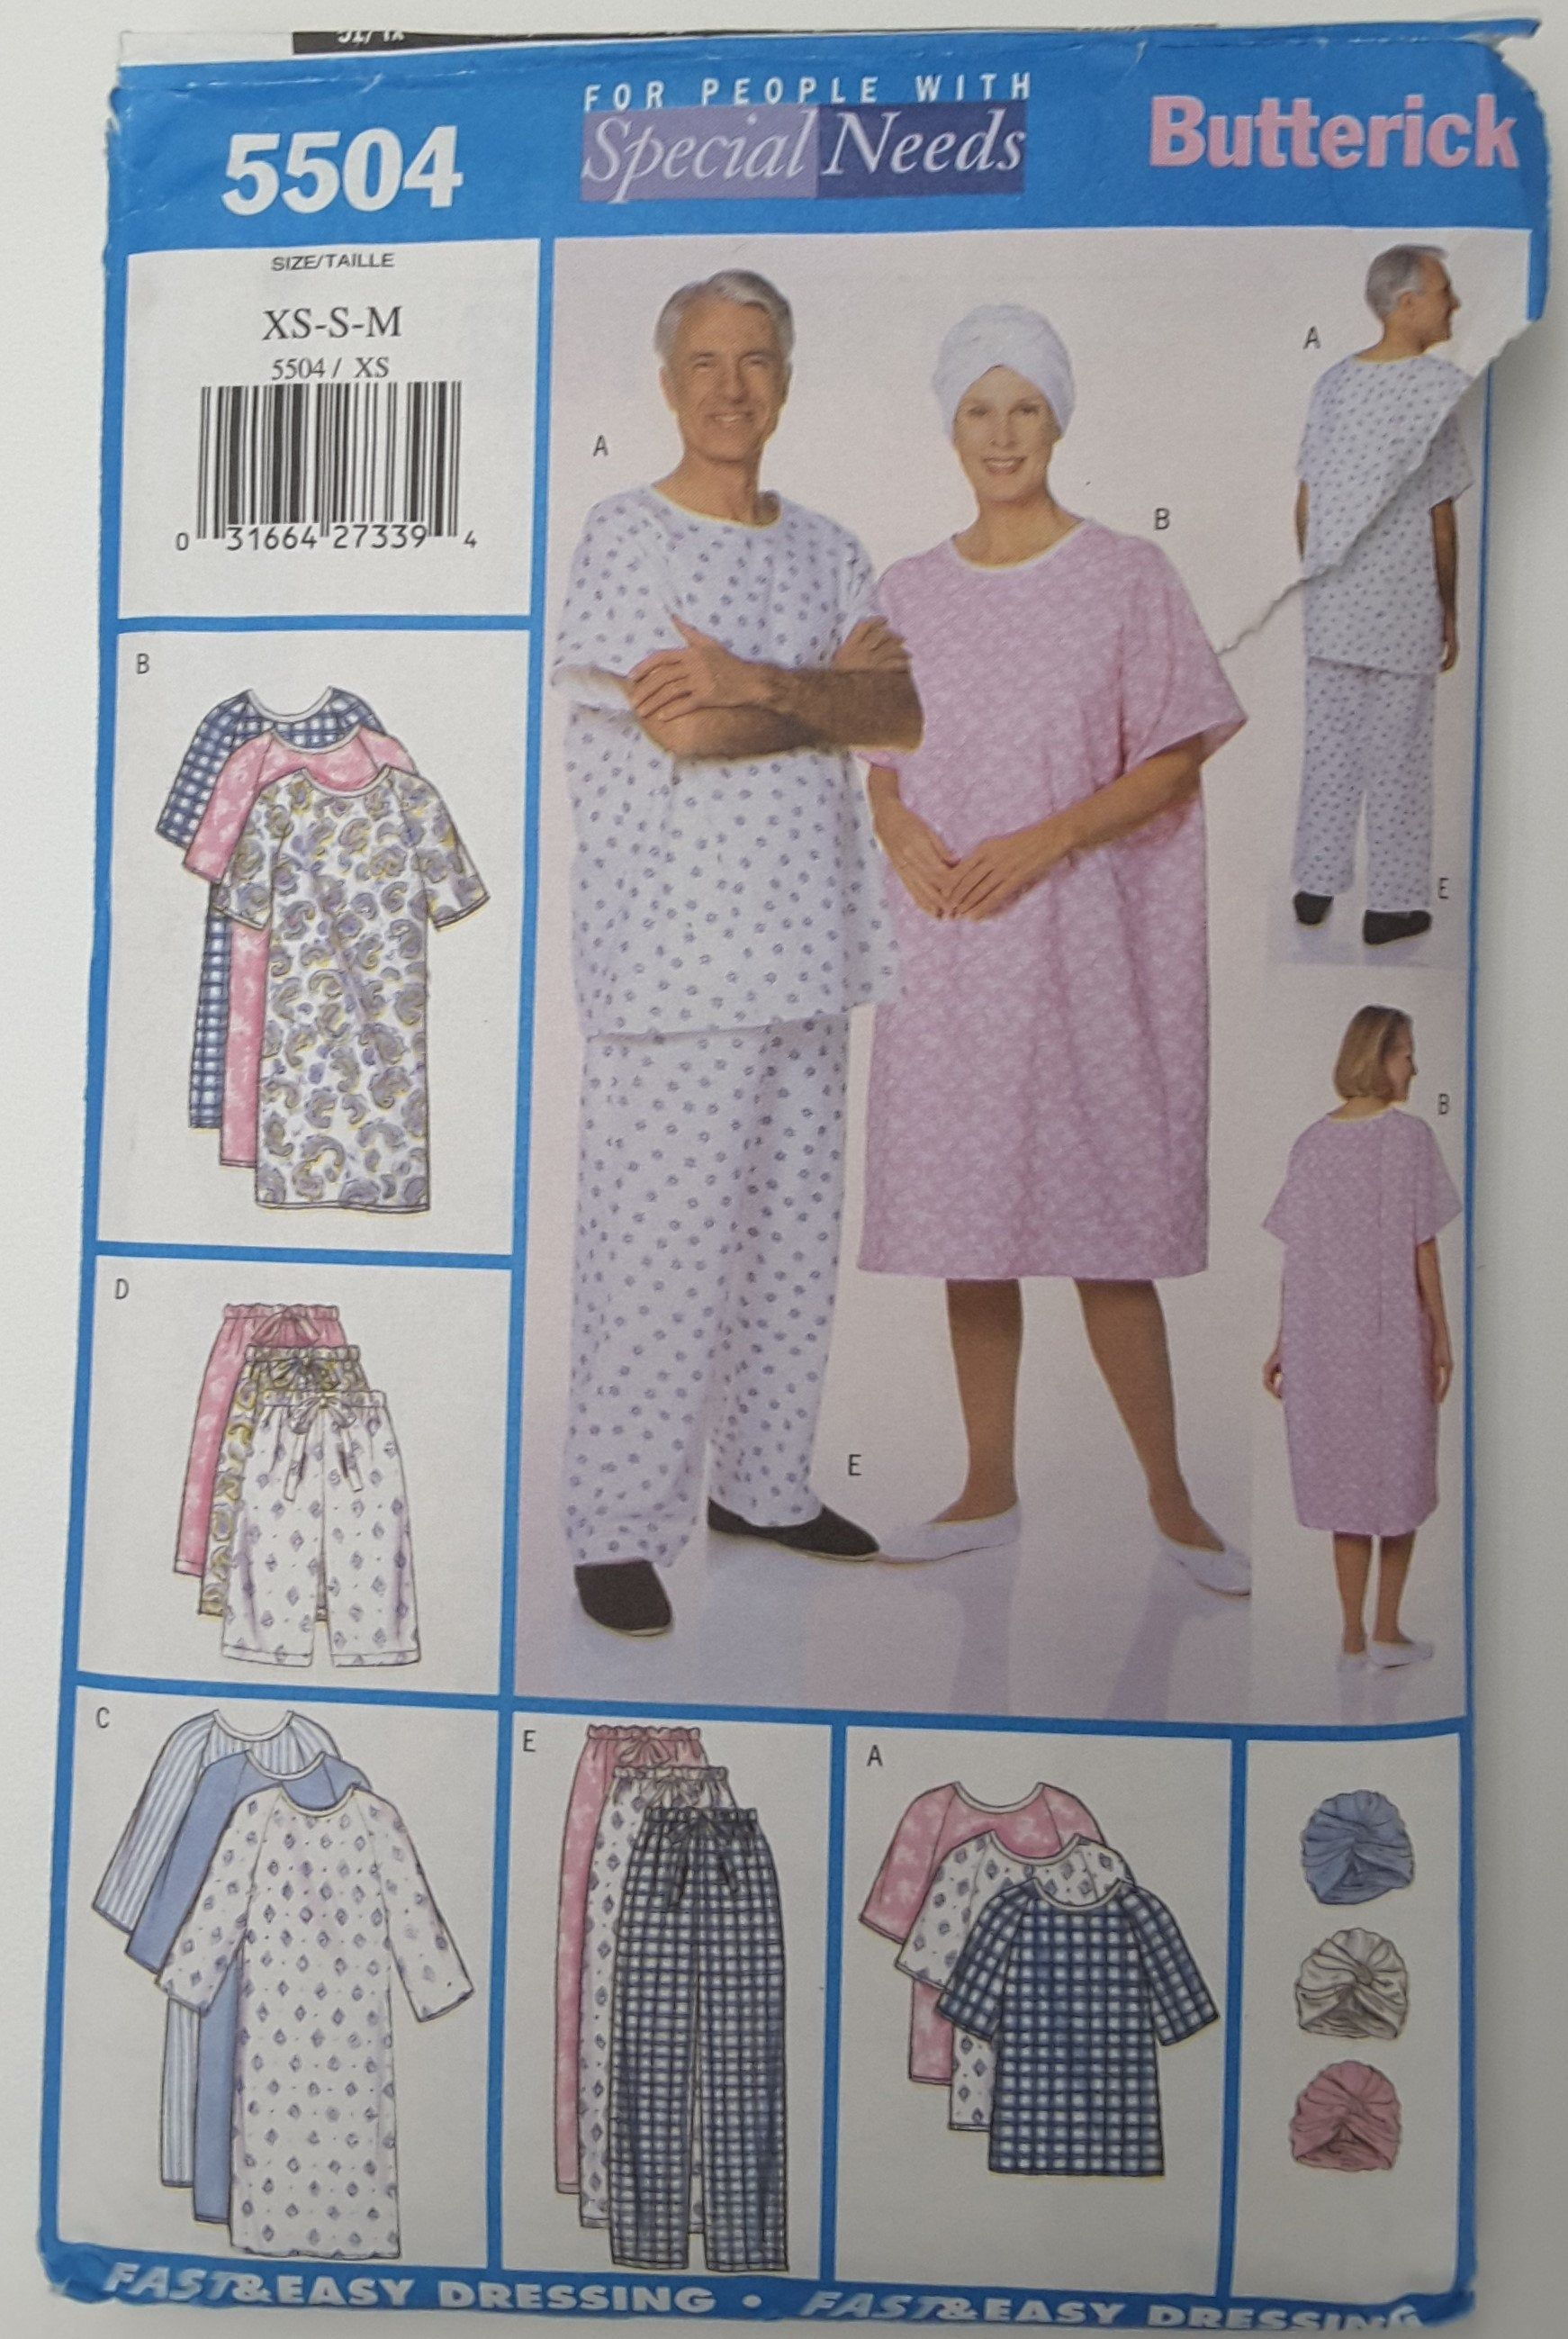 Butterick 5504 For People With Special Needs Unisex Gown Top